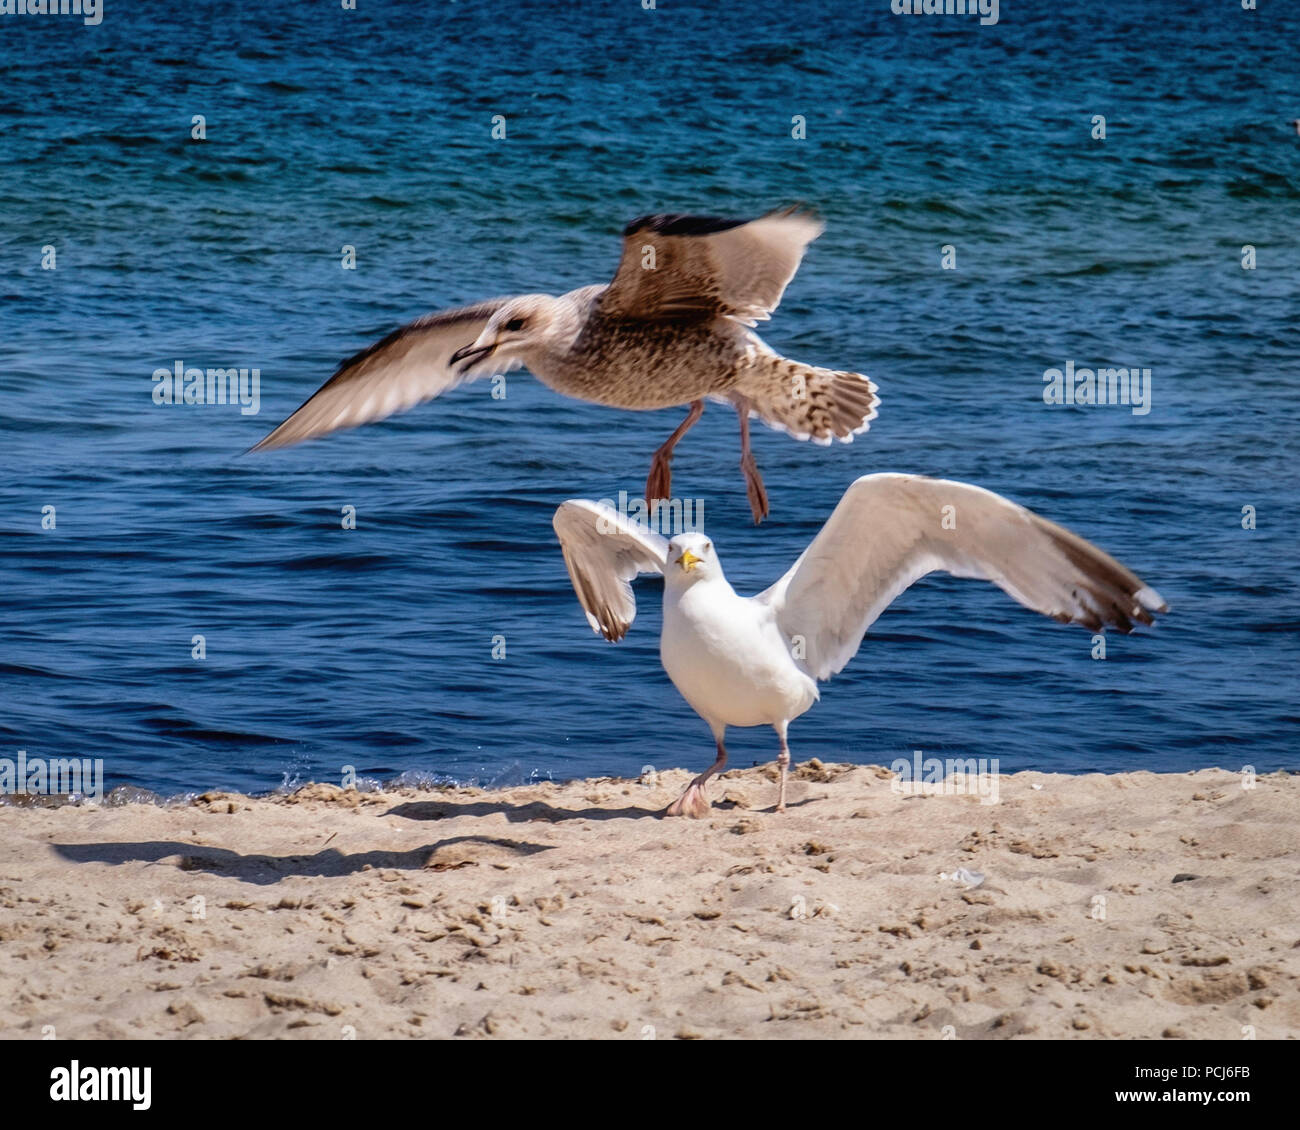 Germany Loddin,Stubbenfelde Beach.Sea gull, Laridae Lari, at Coastal bathing resort on the island of Usedom on the Baltic Sea. - Stock Image